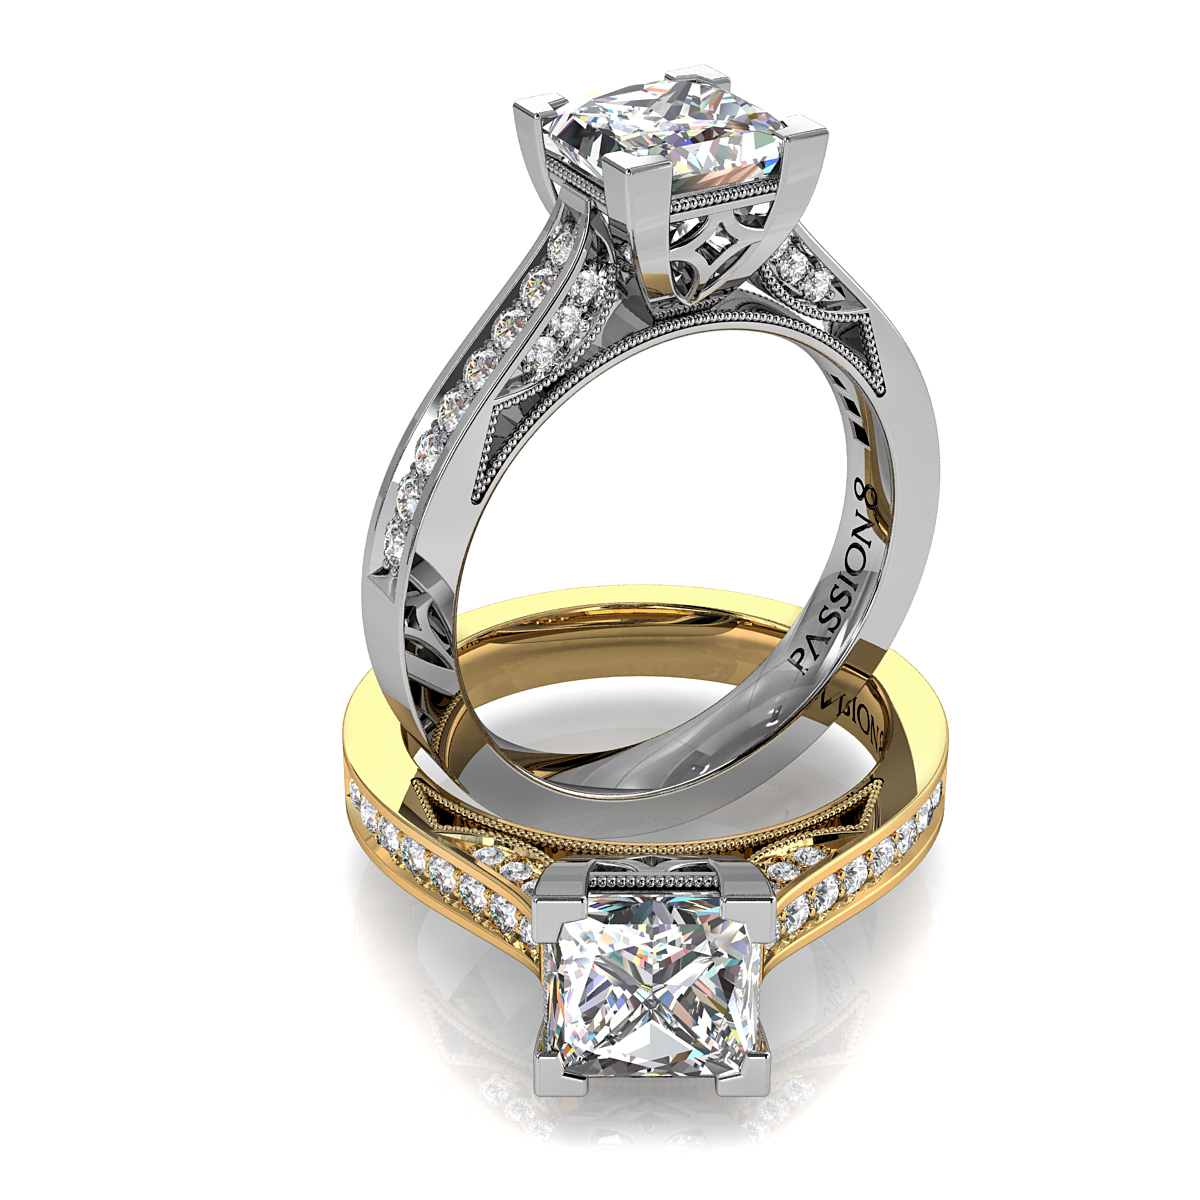 Princess Cut Solitaire Diamond Engagement Ring, 4 Corner Claws on a Bead Set Band with Milgrain Outer Edge Details.